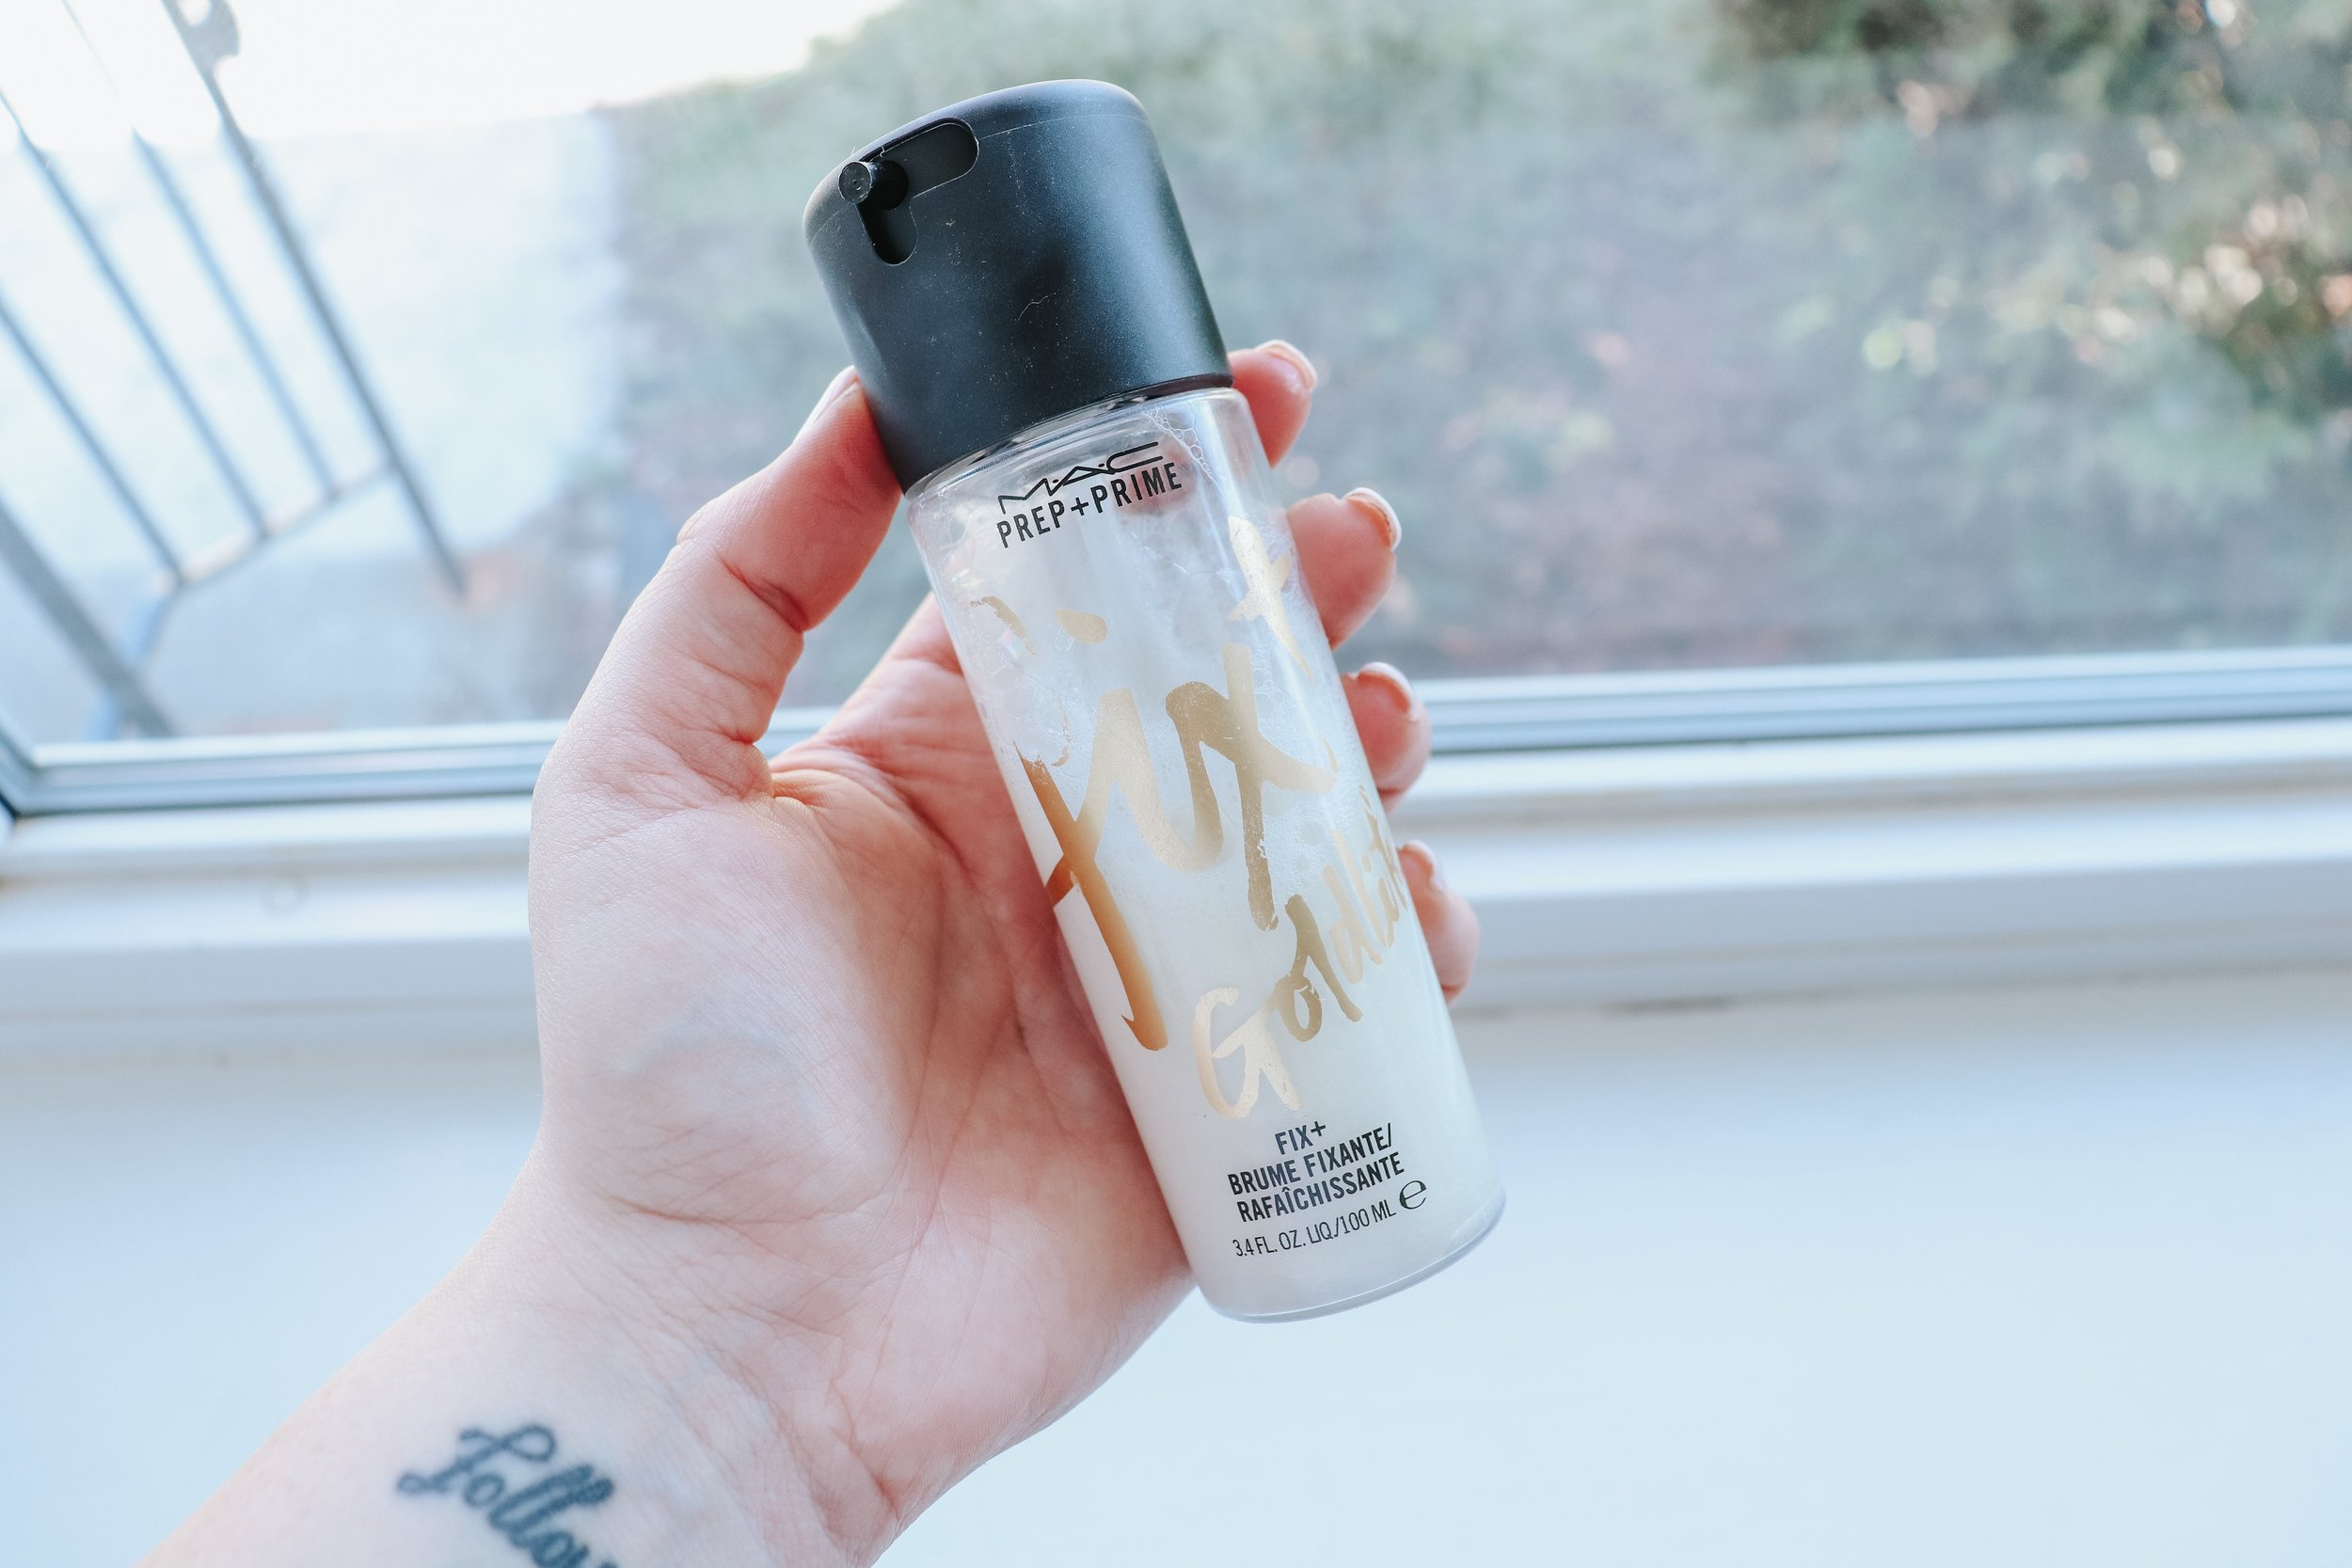 """I am a huge fan of Mac Fix+ so when I saw this one, which has """"pearlescent particles for the ultimate glow"""" I had to try it! I will say, I used it the first time as just a setting spray and didn't really see a difference. BUT the second time I used it after my moisturizer, under my foundation, then again as a setting spray and IT WAS FREAKING AMAZING! My skin looked so glowy!"""